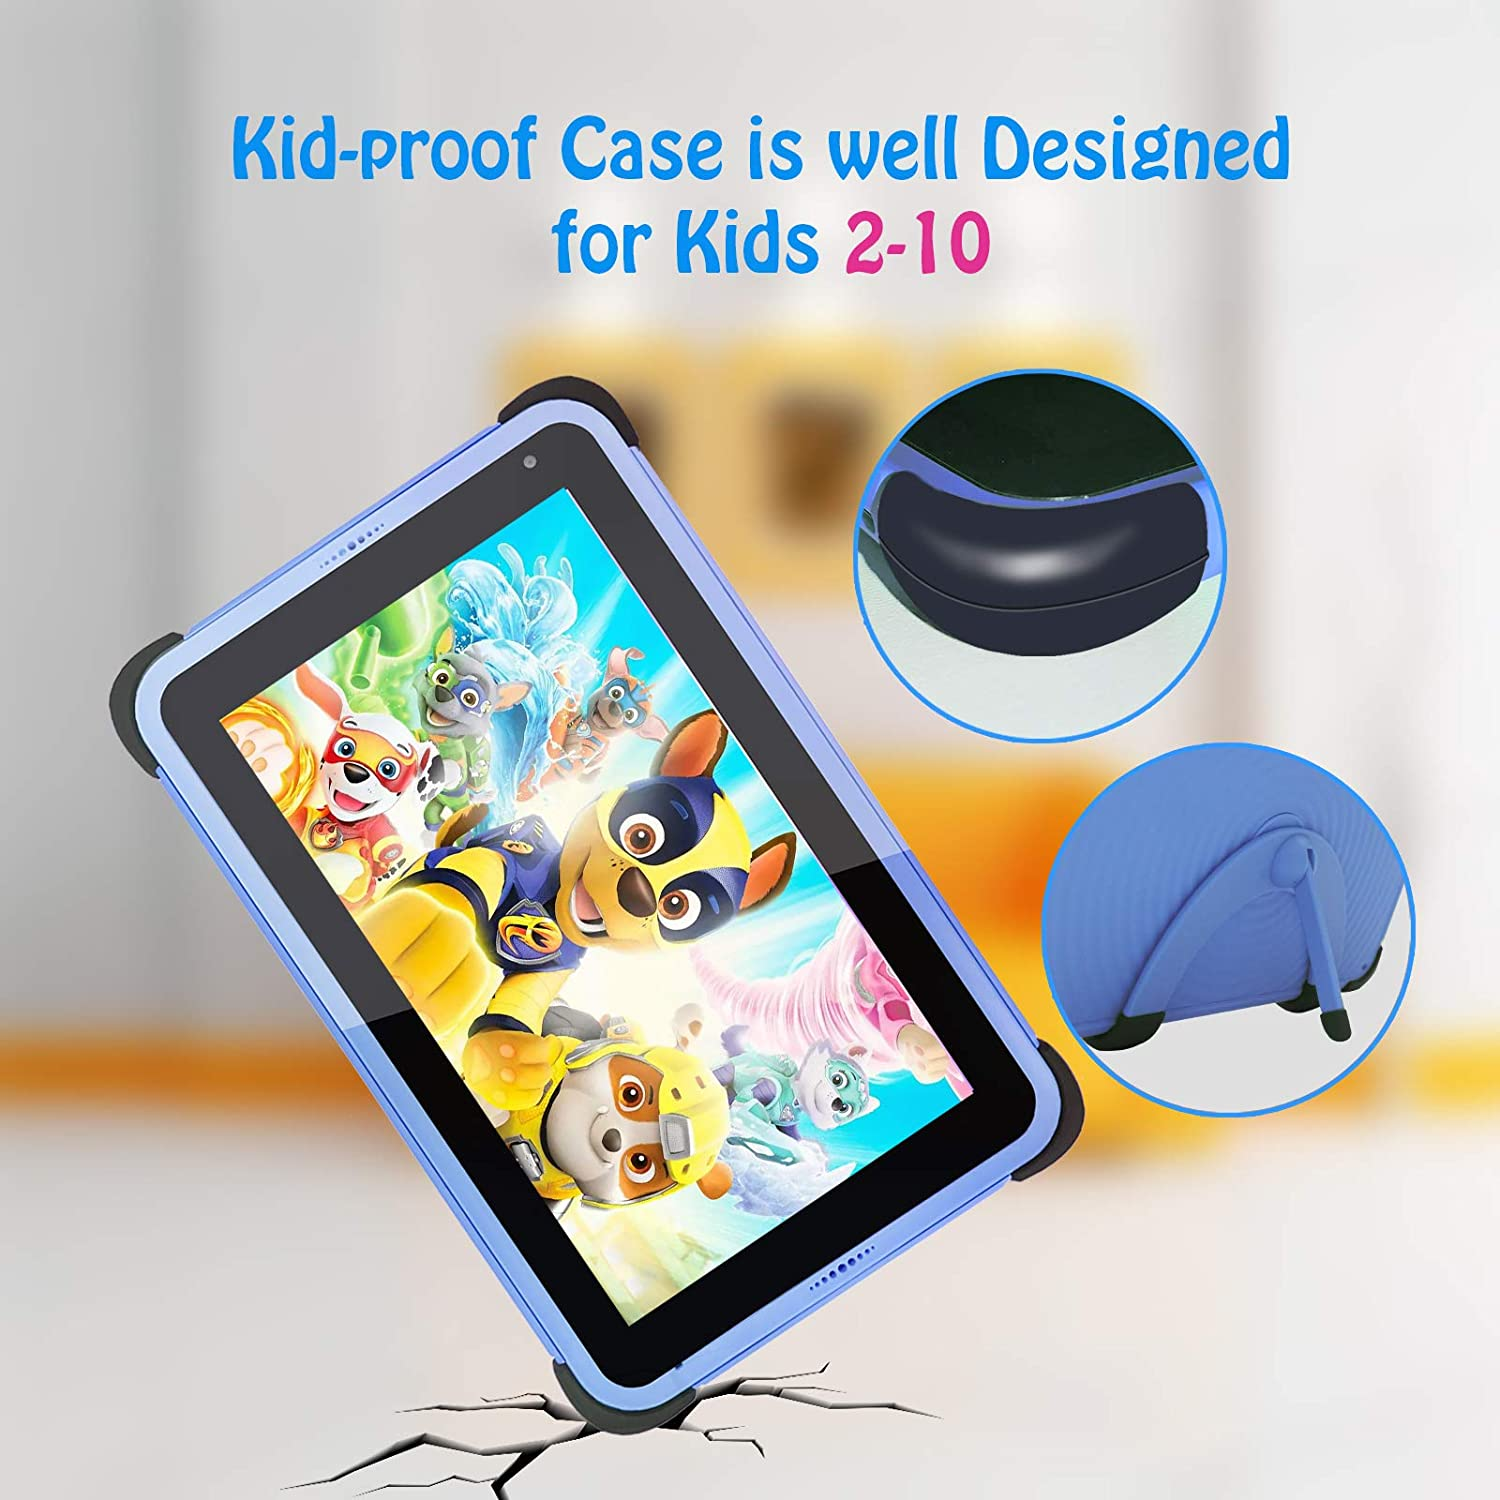 Kids Tablet 7 Inch WiFi Android Tablet 2021 Parental Control, Kid-Proof Case with Stand